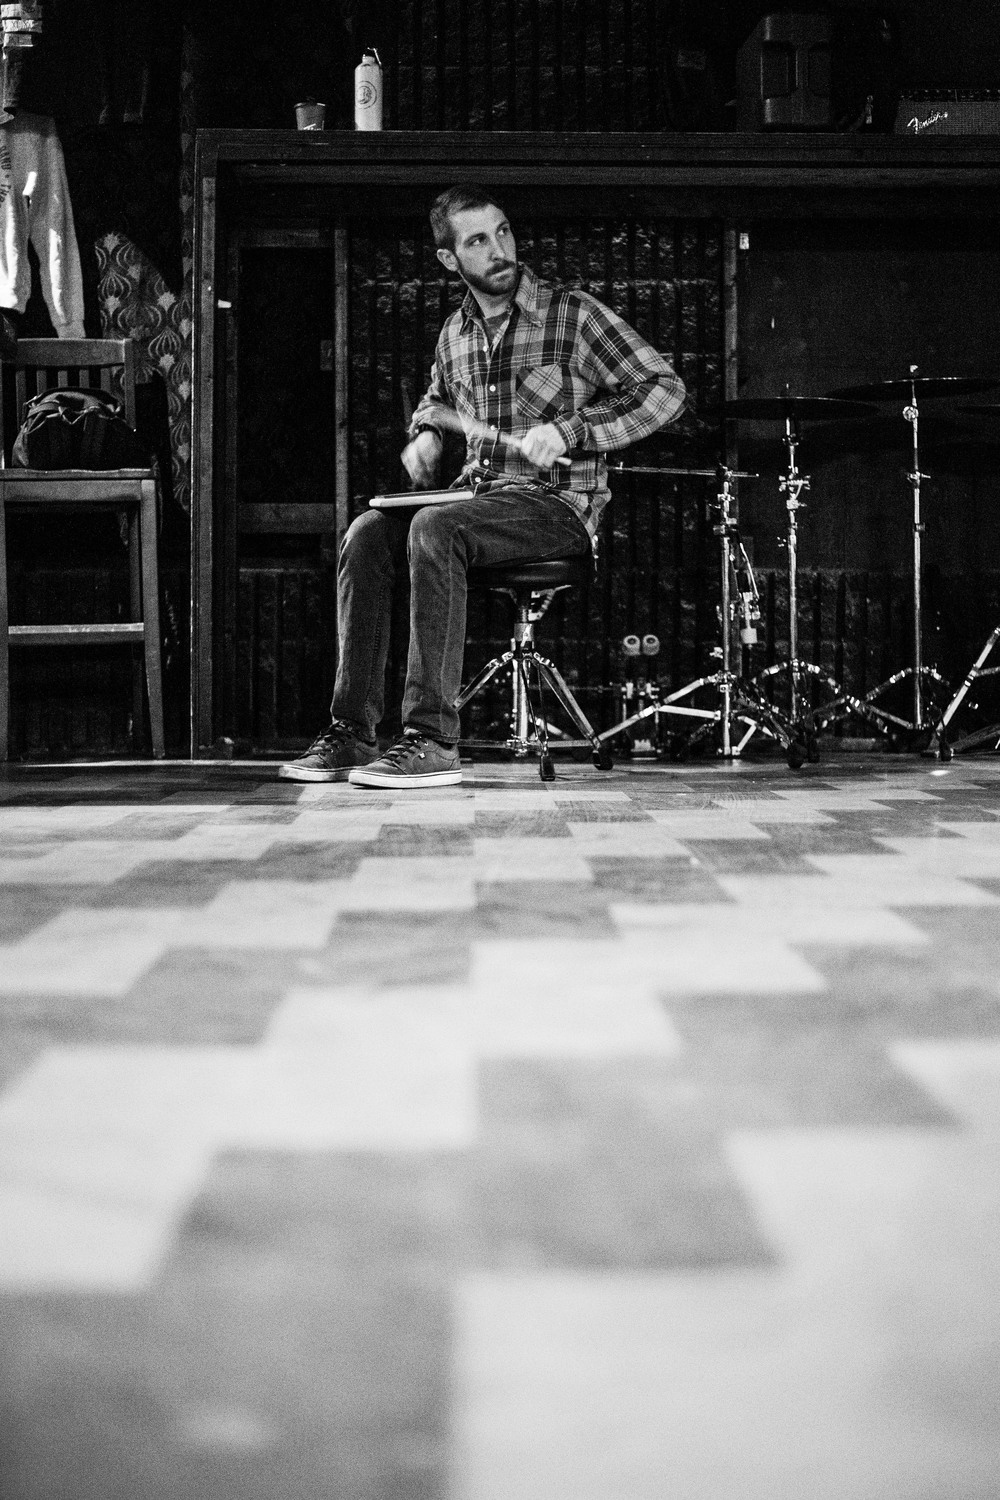 Steve Gibson warms up before the show at the Hard Luck Bar  in Toronto, Ontario,   Wednesday April 6, 2016.